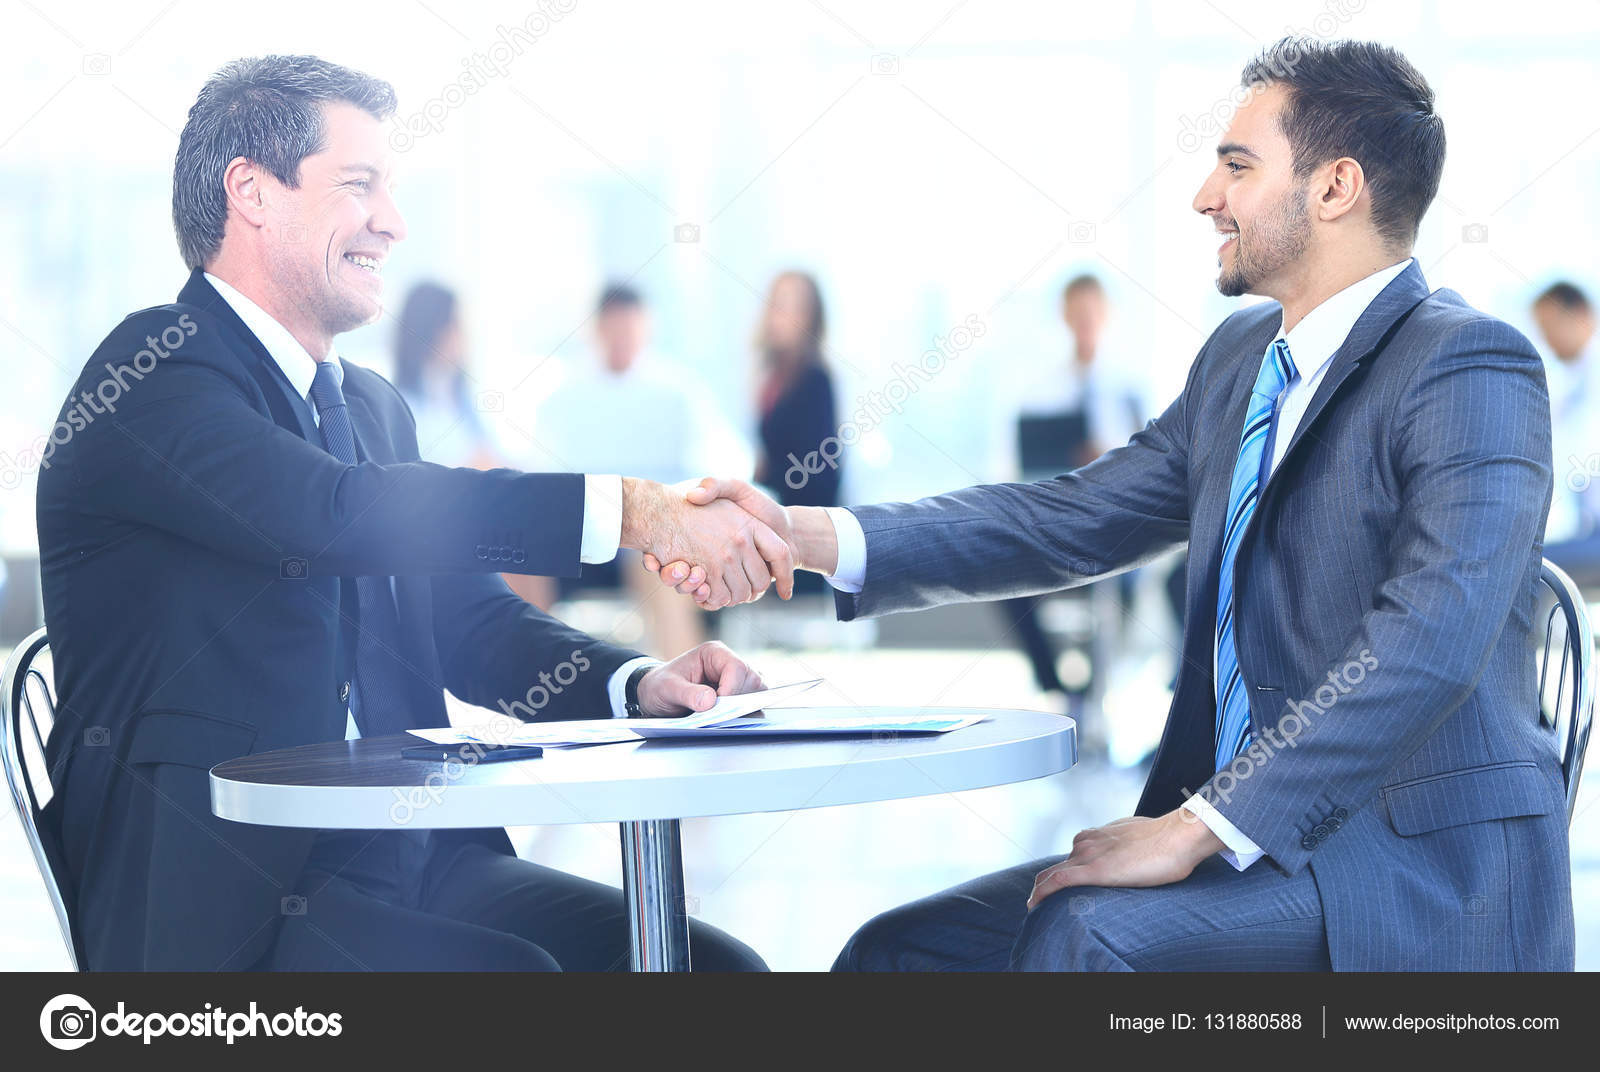 Business people handshake greeting deal at work photo free download - Business People Meeting Discussion Corporate Handshake Concept Stock Photo 131880588